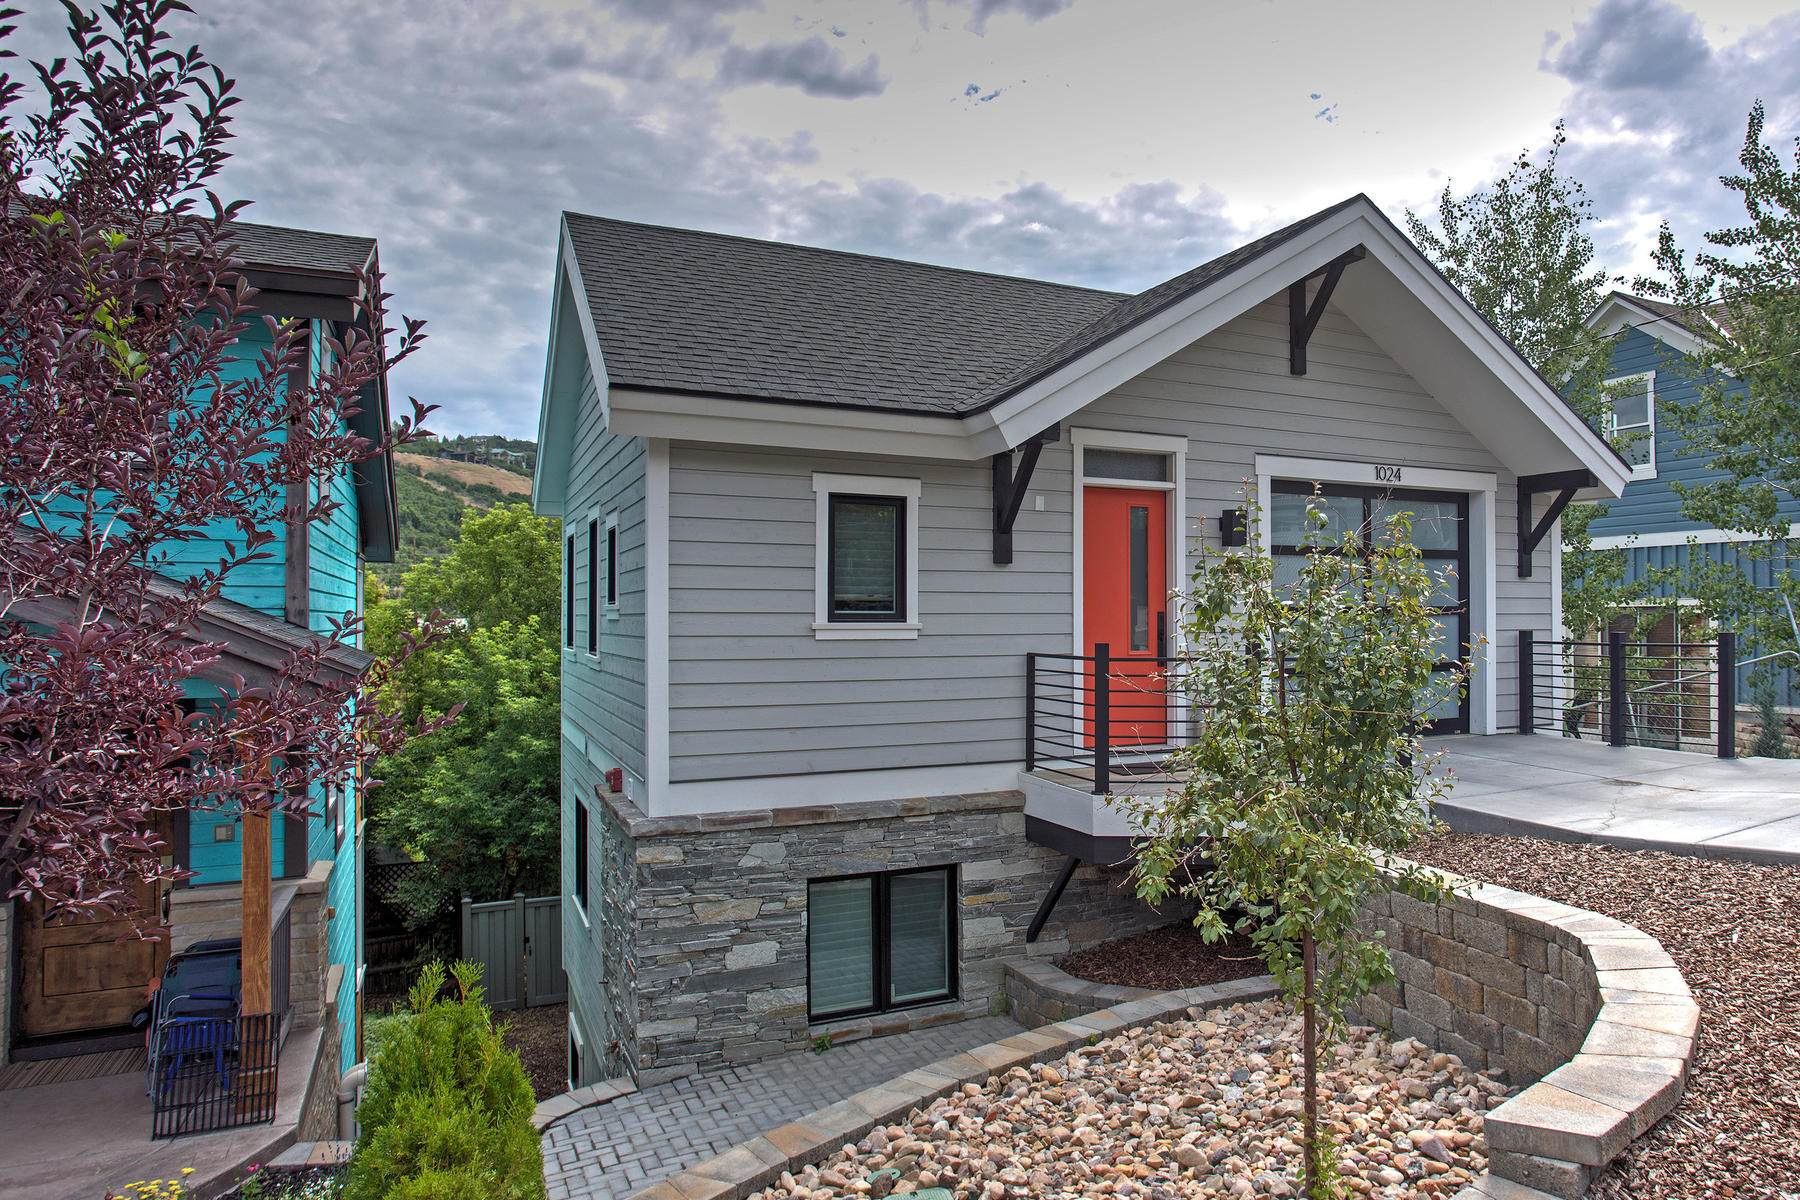 단독 가정 주택 용 매매 에 Beautiful Mountain Contemporary Home Located in the Heart of Park City 1024 Norfolk Ave Park City, 유타, 84060 미국